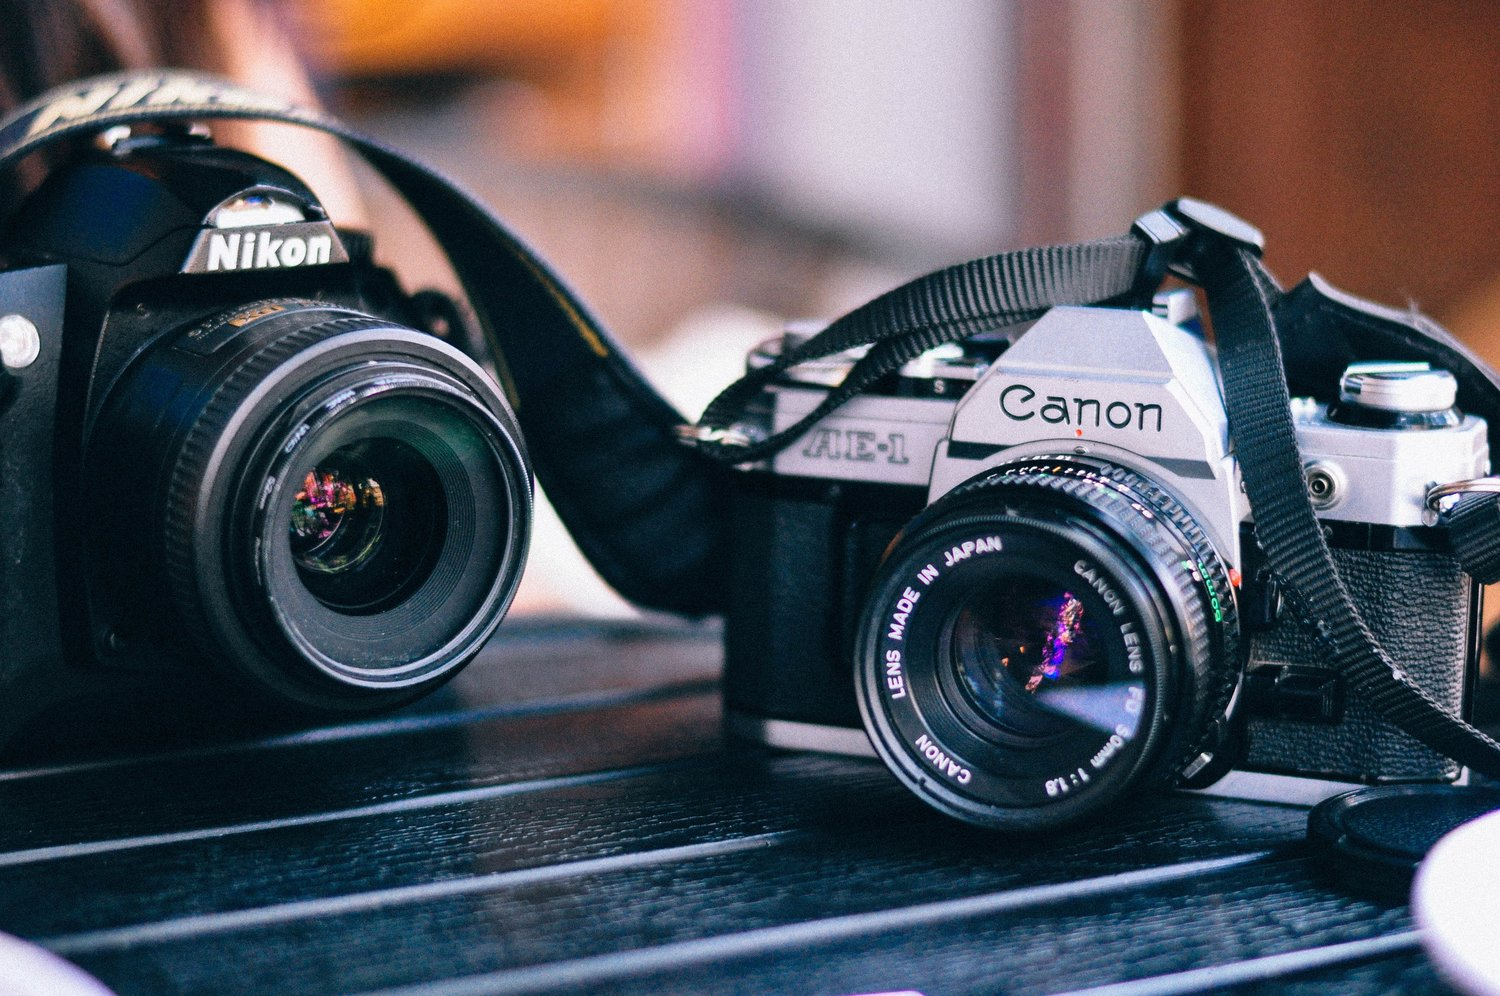 Nikon Vs. Canon: Which Is Better?